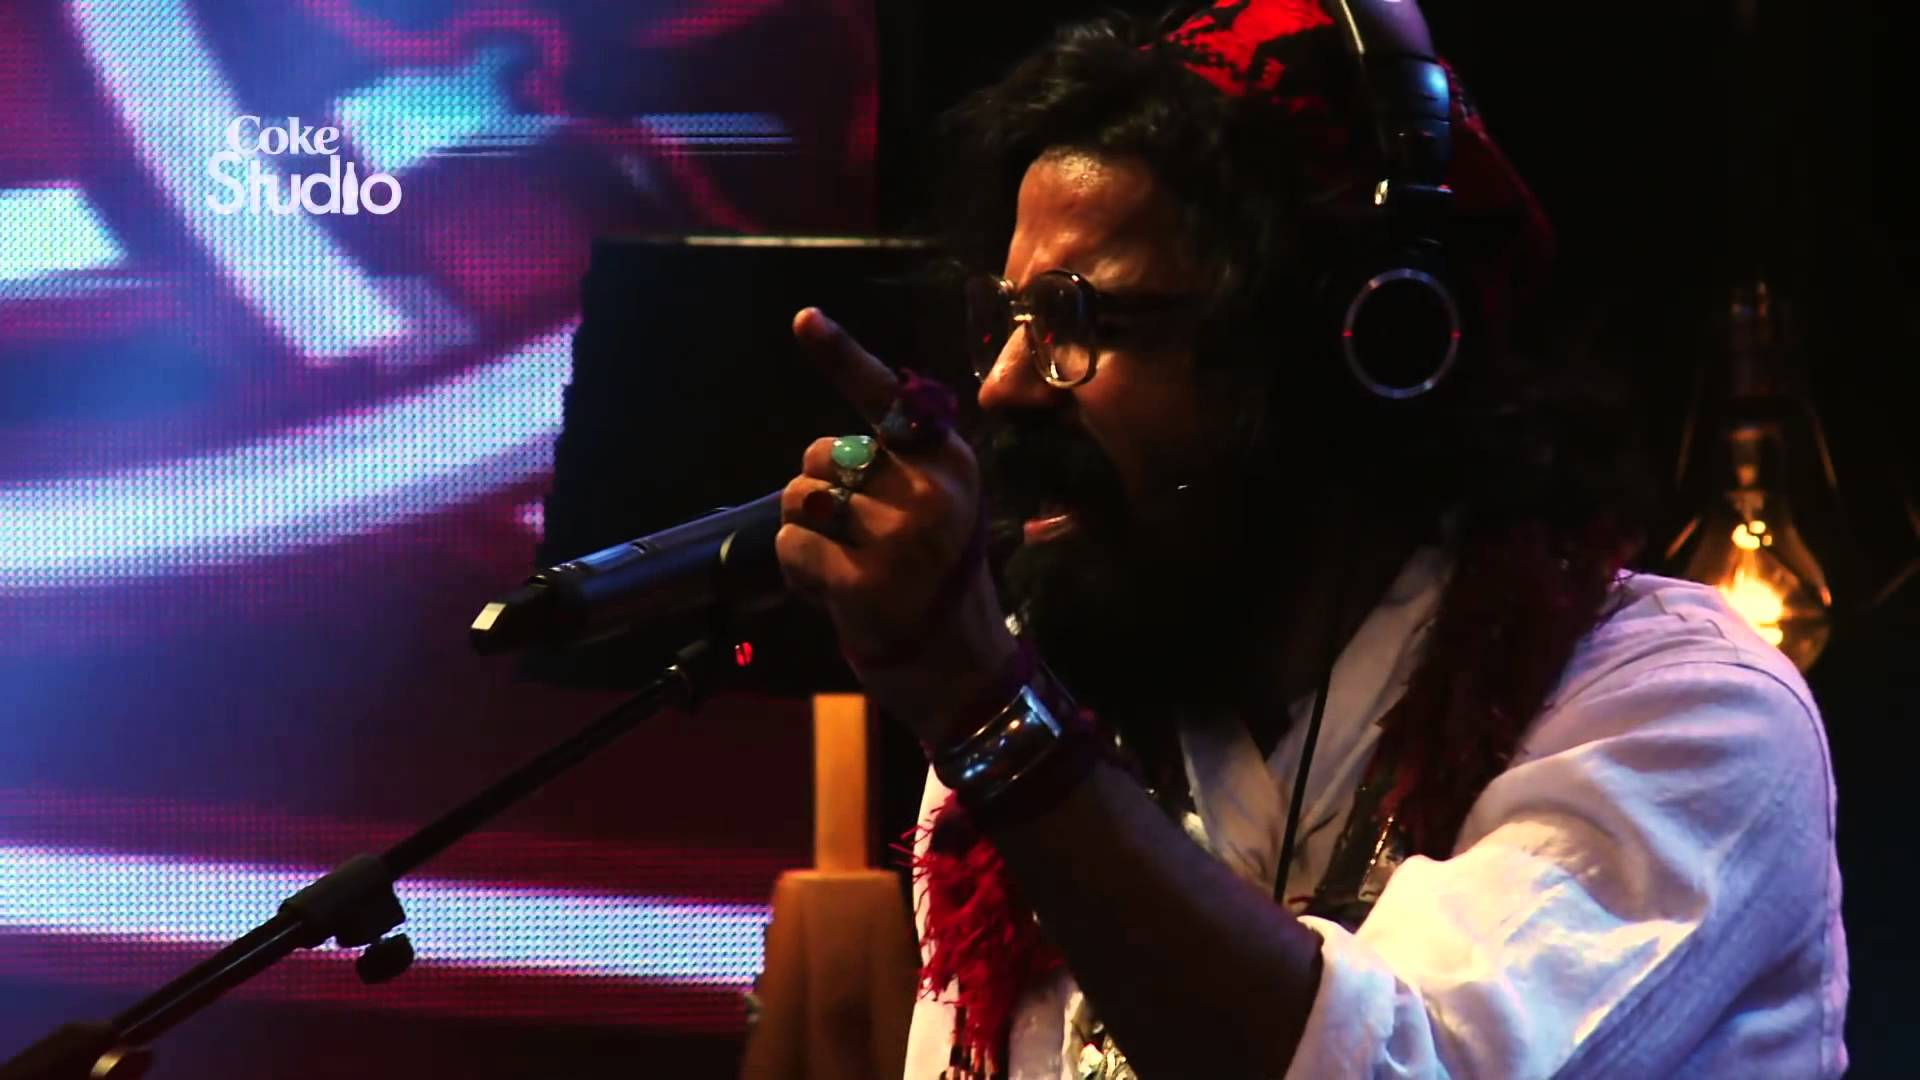 Asrar – Sub Aakho Ali Ali (Coke Studio Season 7, Episode 1 – Lyrics With Translation)Asrar – Sub Aakho Ali Ali (Coke Studio Season 7, Episode 1 – Lyrics With Translation),Lyrics With Translation,Asrar – Sub Aakho Ali Ali (Coke Studio Season 7, Episode 1,Coke Studio,Asrar – Sub Aakho Ali Ali,Asrar,Sub Aakho Ali Ali,Sufisim,sufi,Hazrat Ali